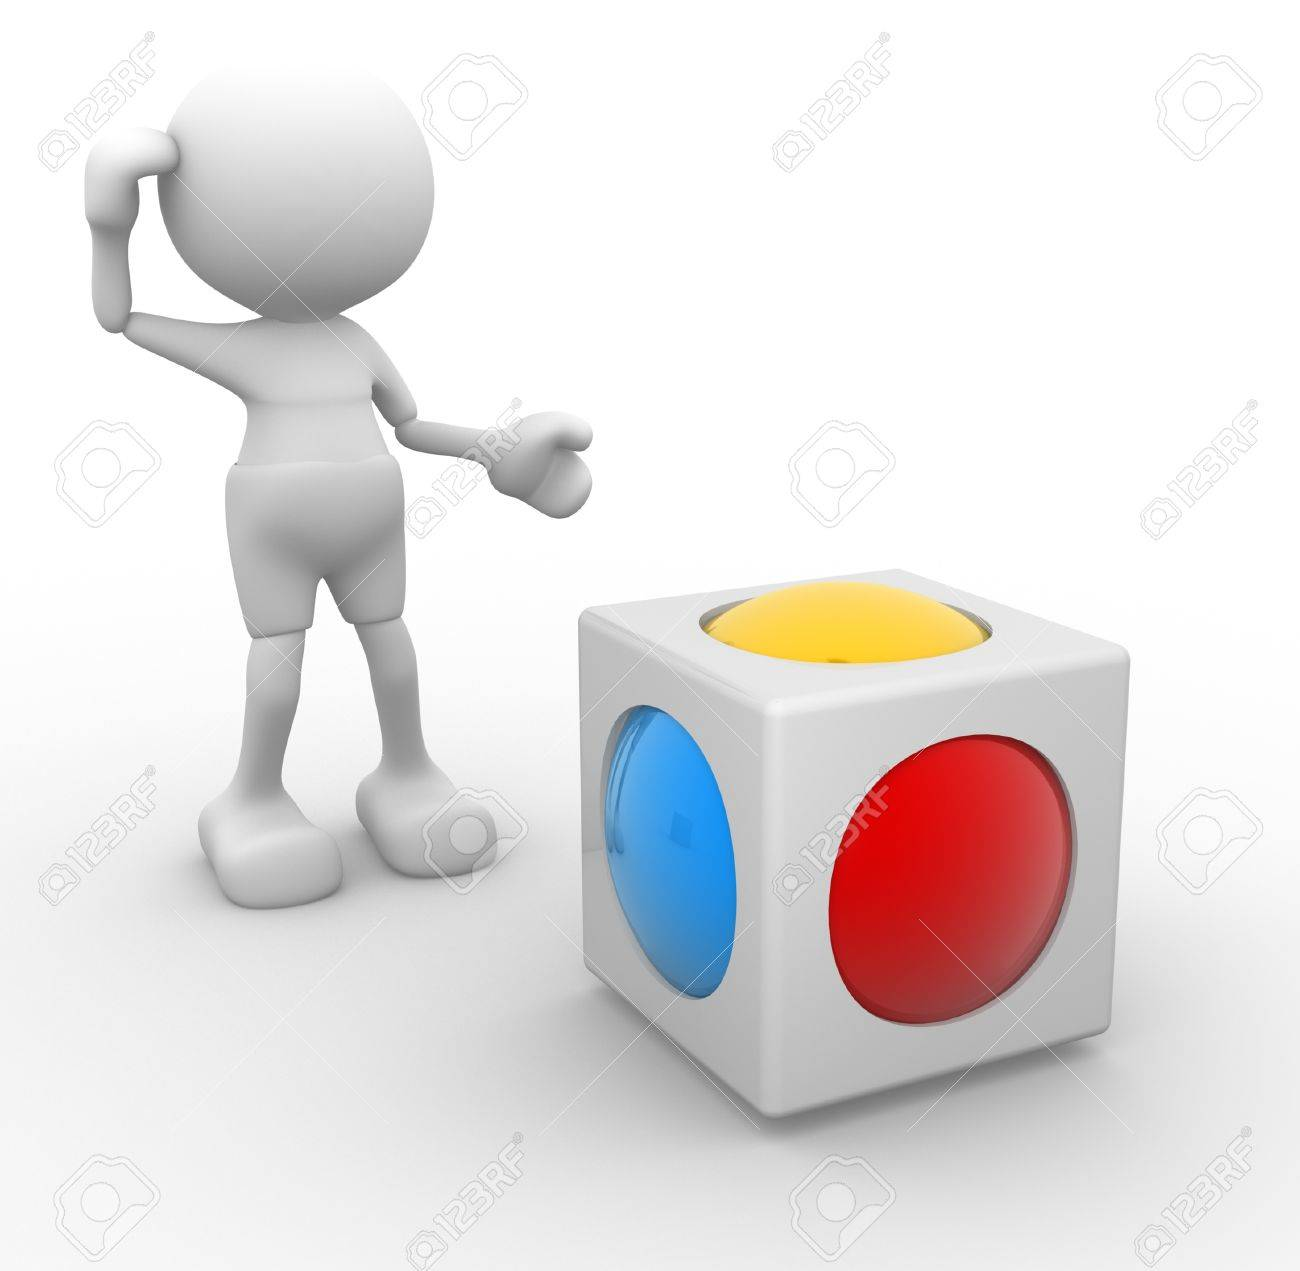 3d people - man, person and a cube with sphere inside  Abstract design Stock Photo - 14868592